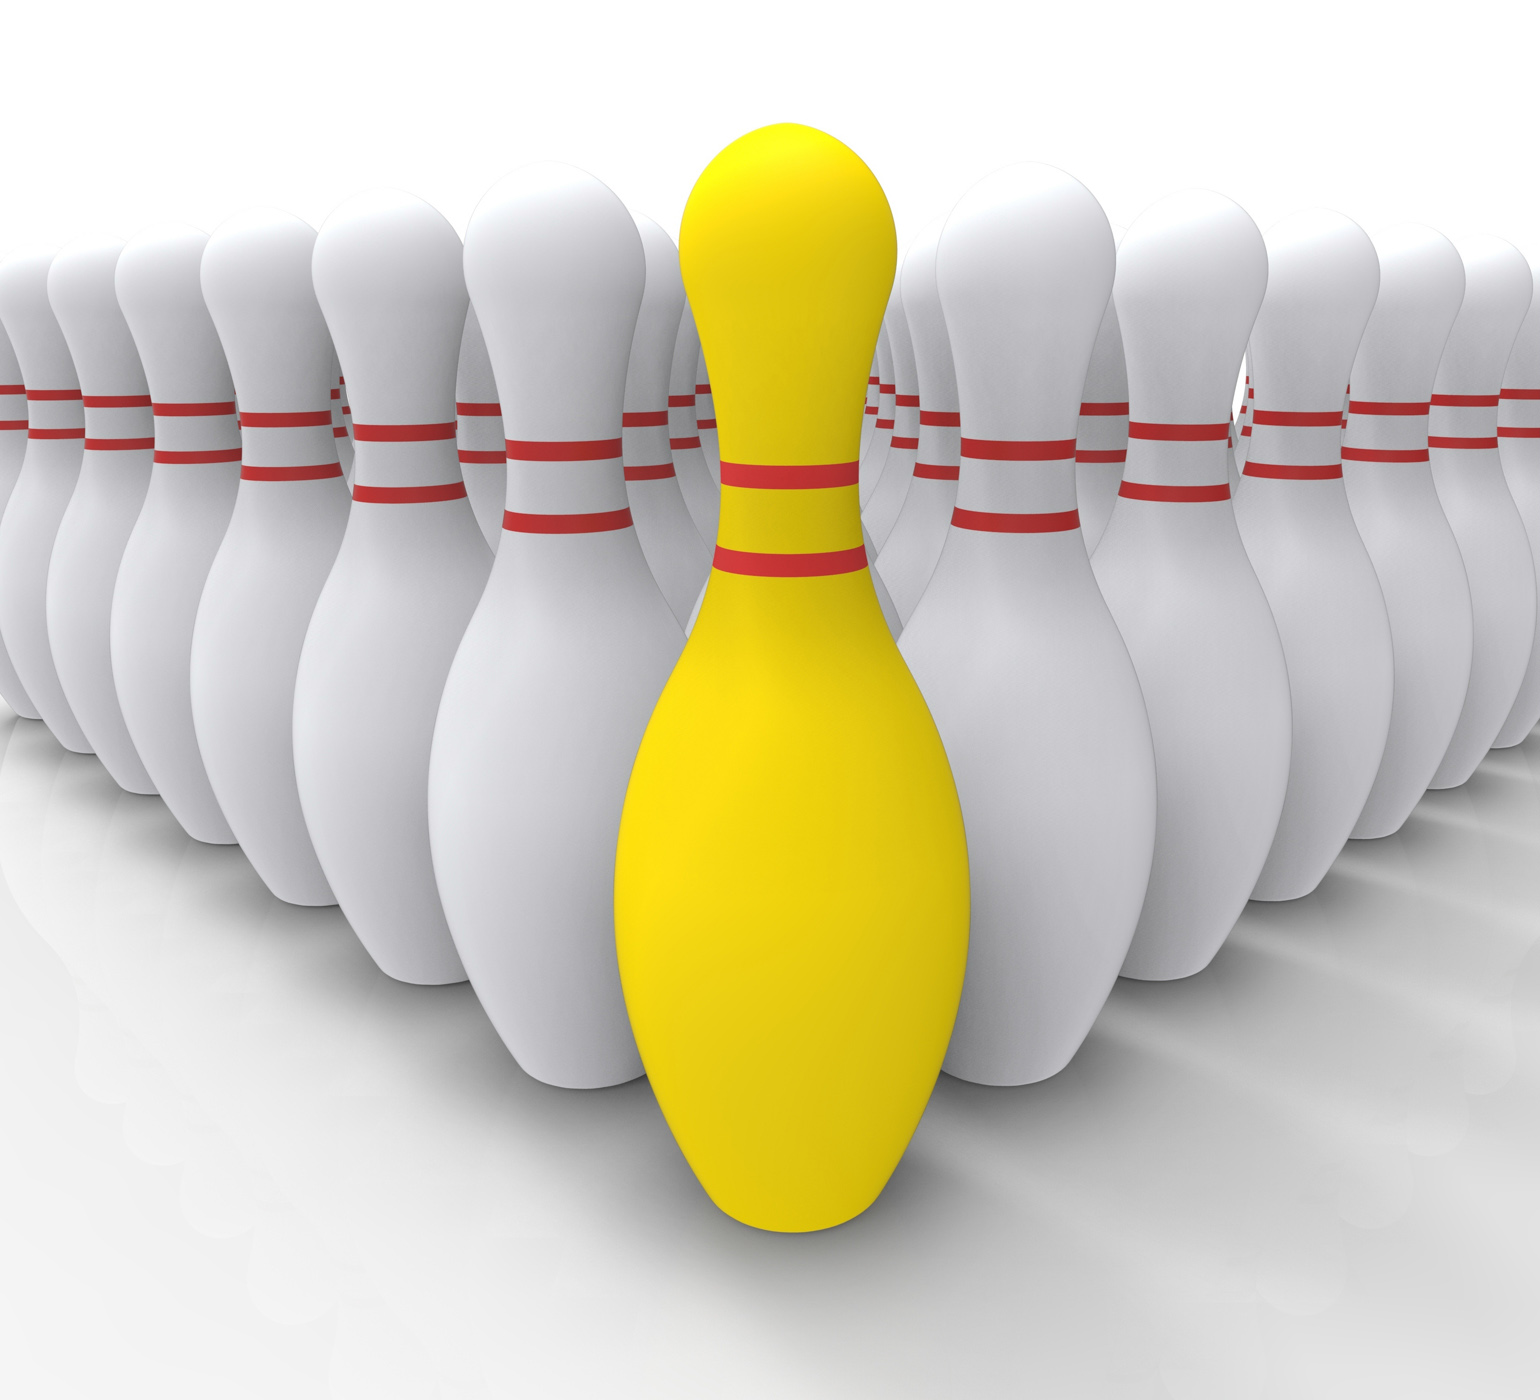 Vision bowling skittles shows achieving photo